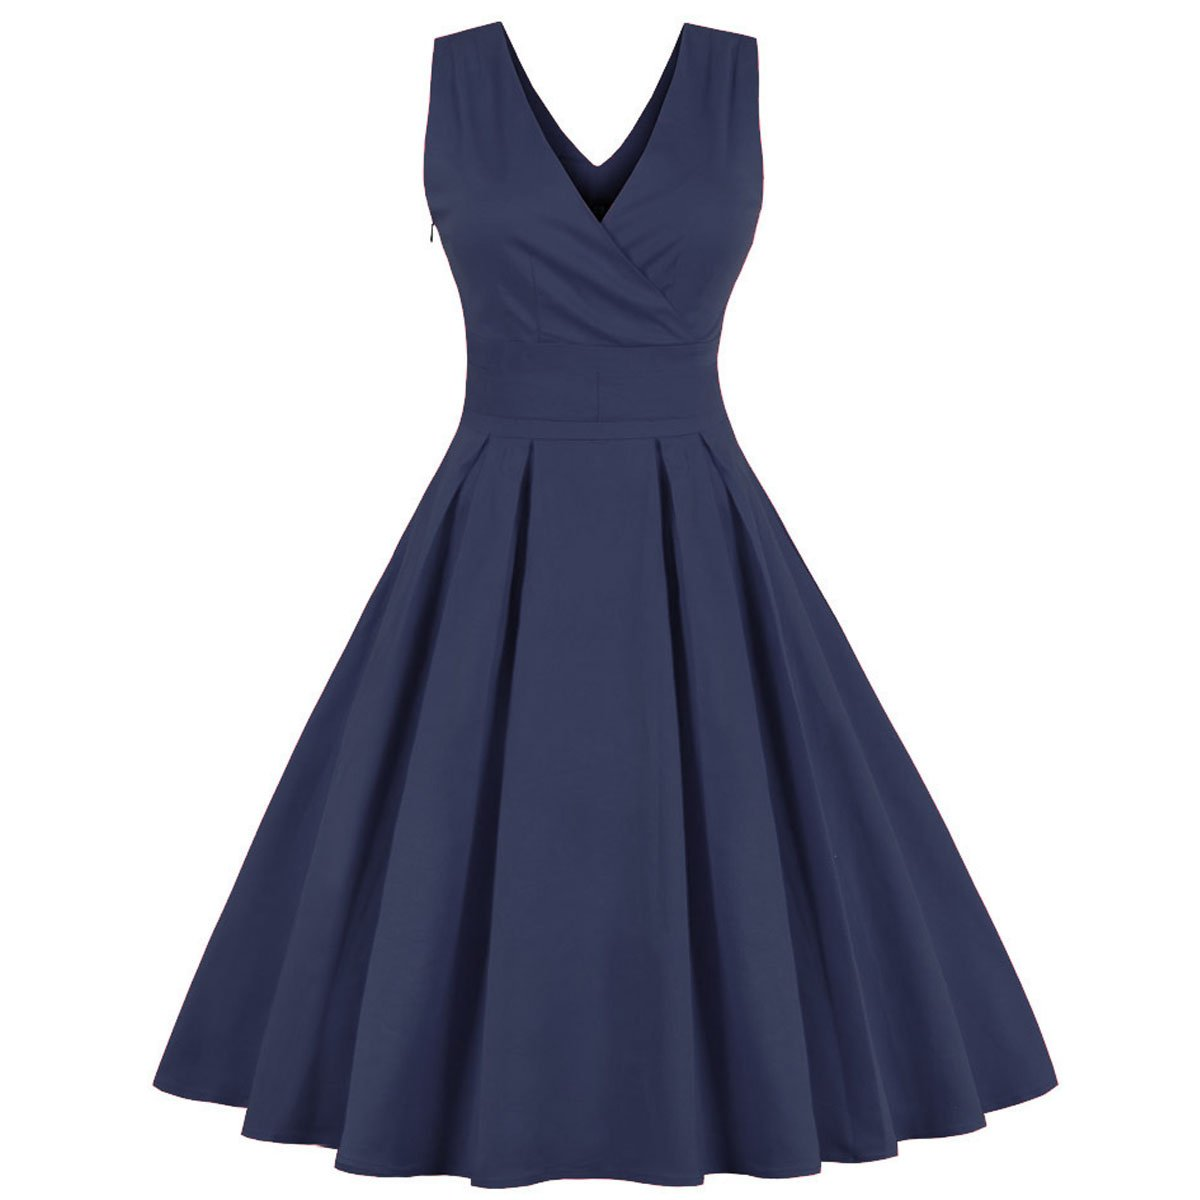 Yuxin Women s V-Neck Vintage 1950s Retro Cocktail Dress Rockabilly Prom  Dresses Party Gown at Amazon Women s Clothing store  dbadd7700